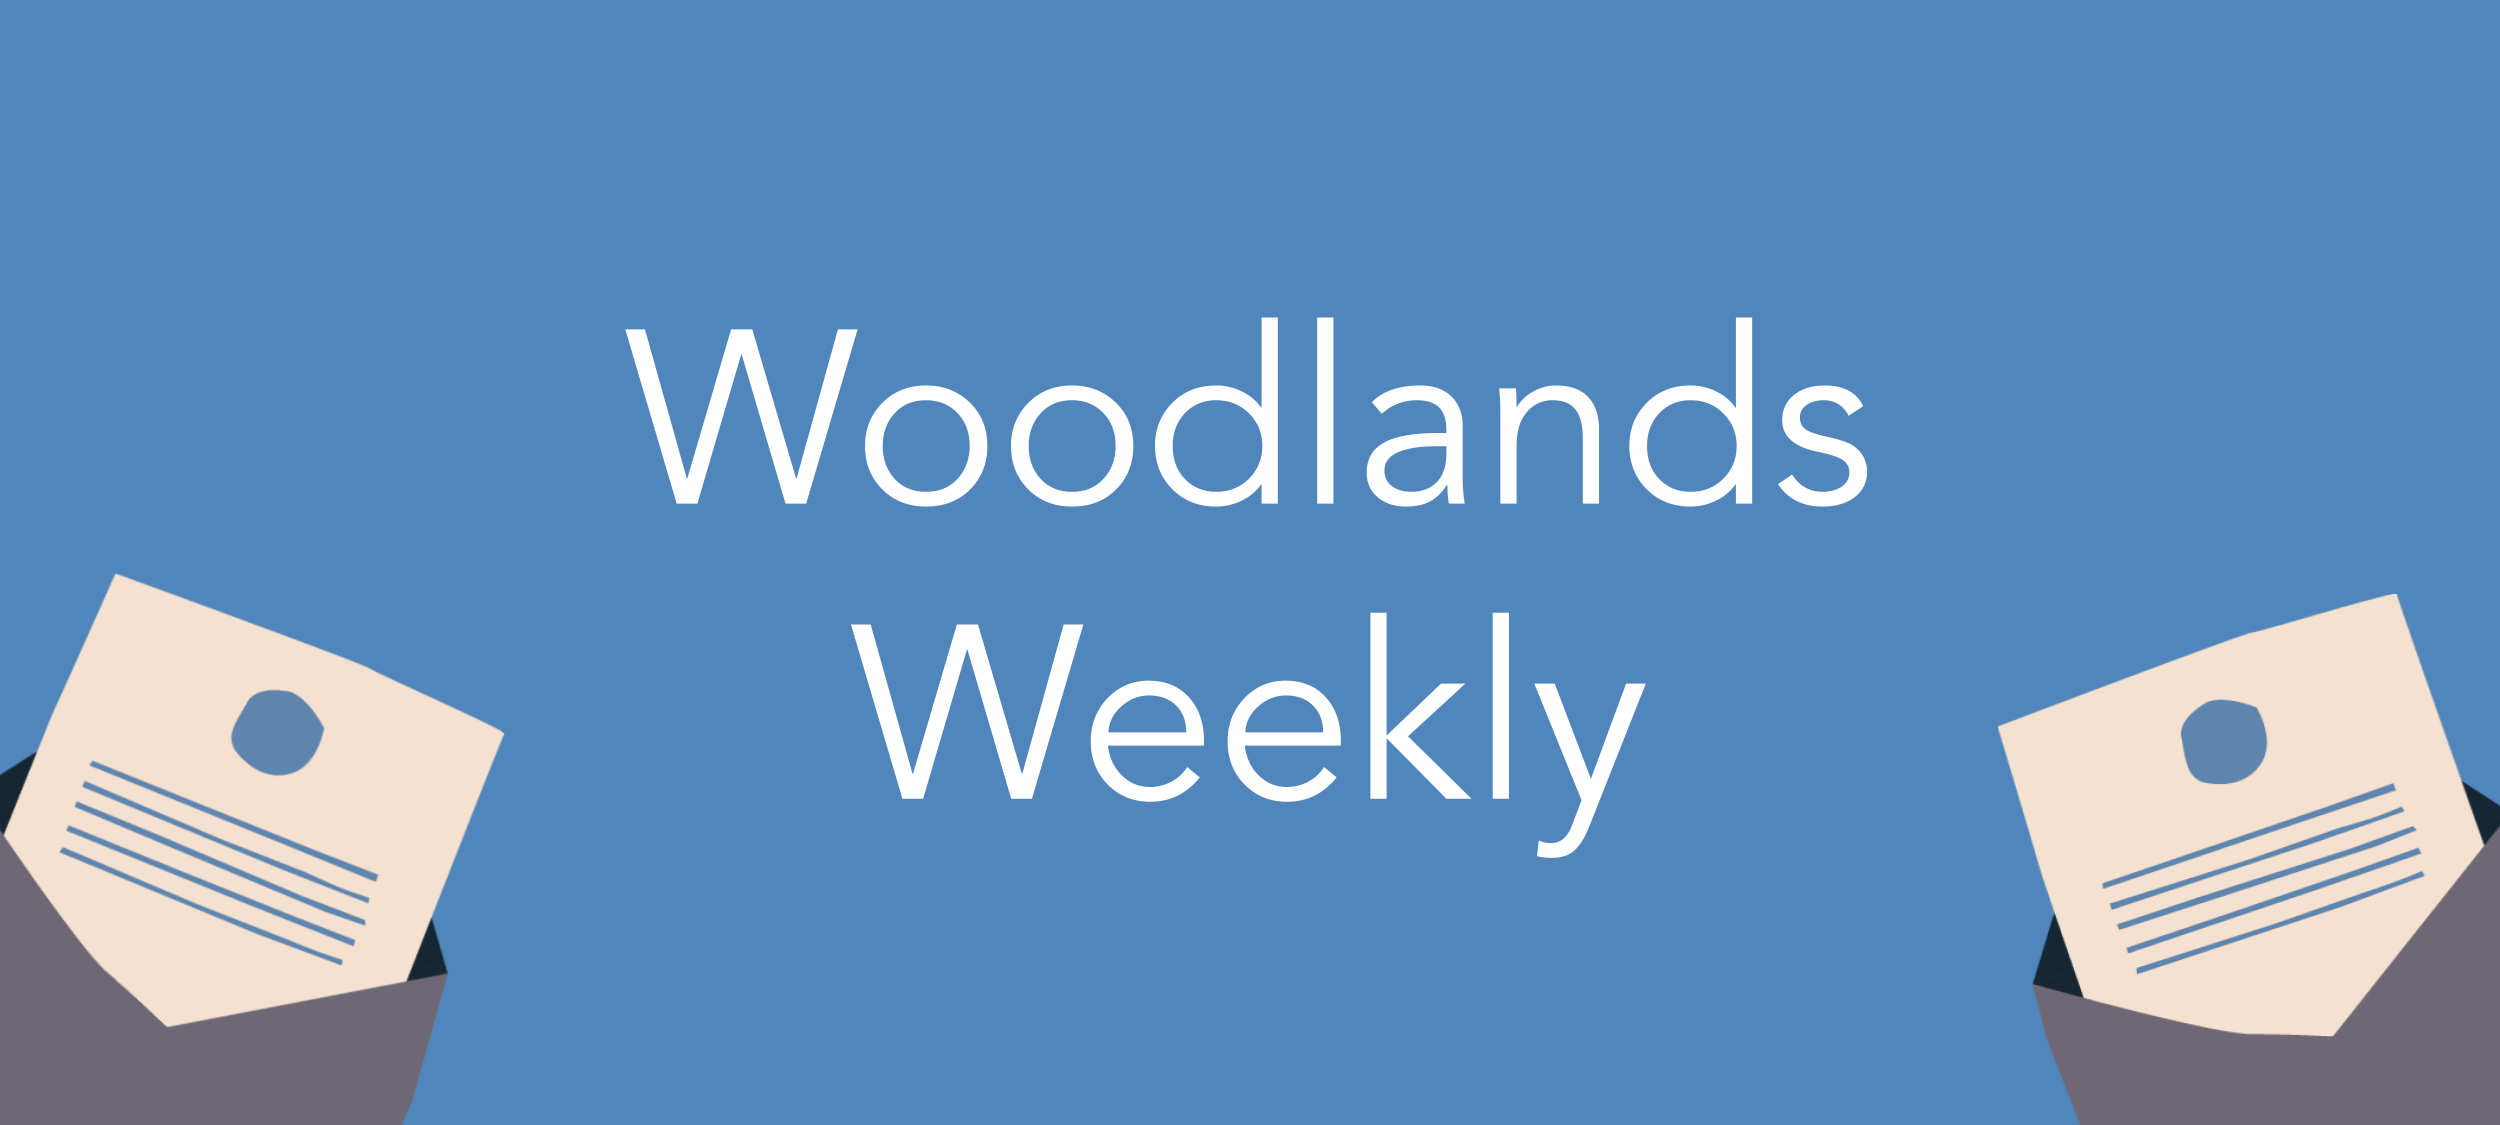 Woodlands Weekly   Friday 23rd July 2021